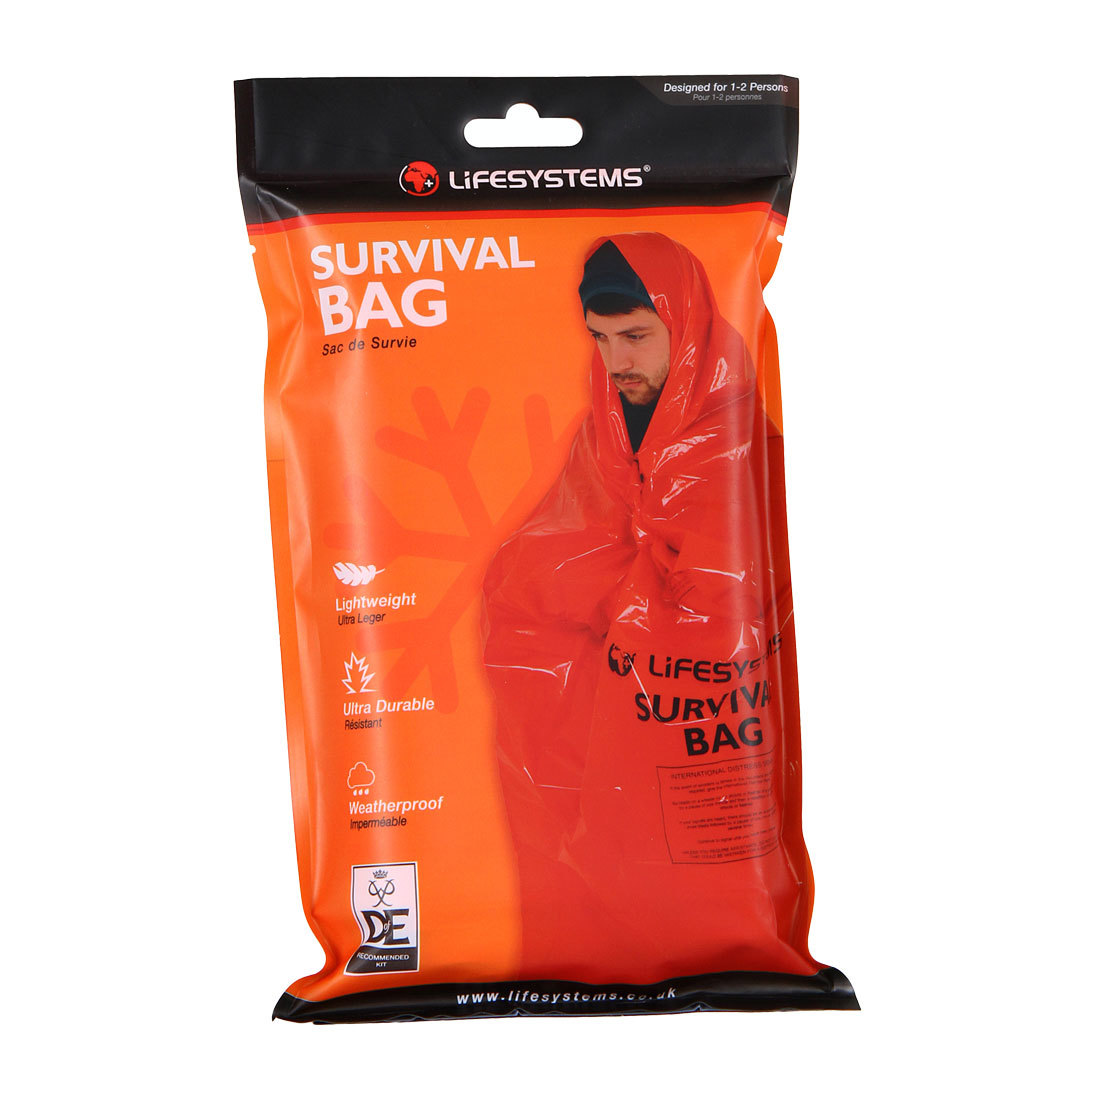 2090-survival-bag-4.jpg